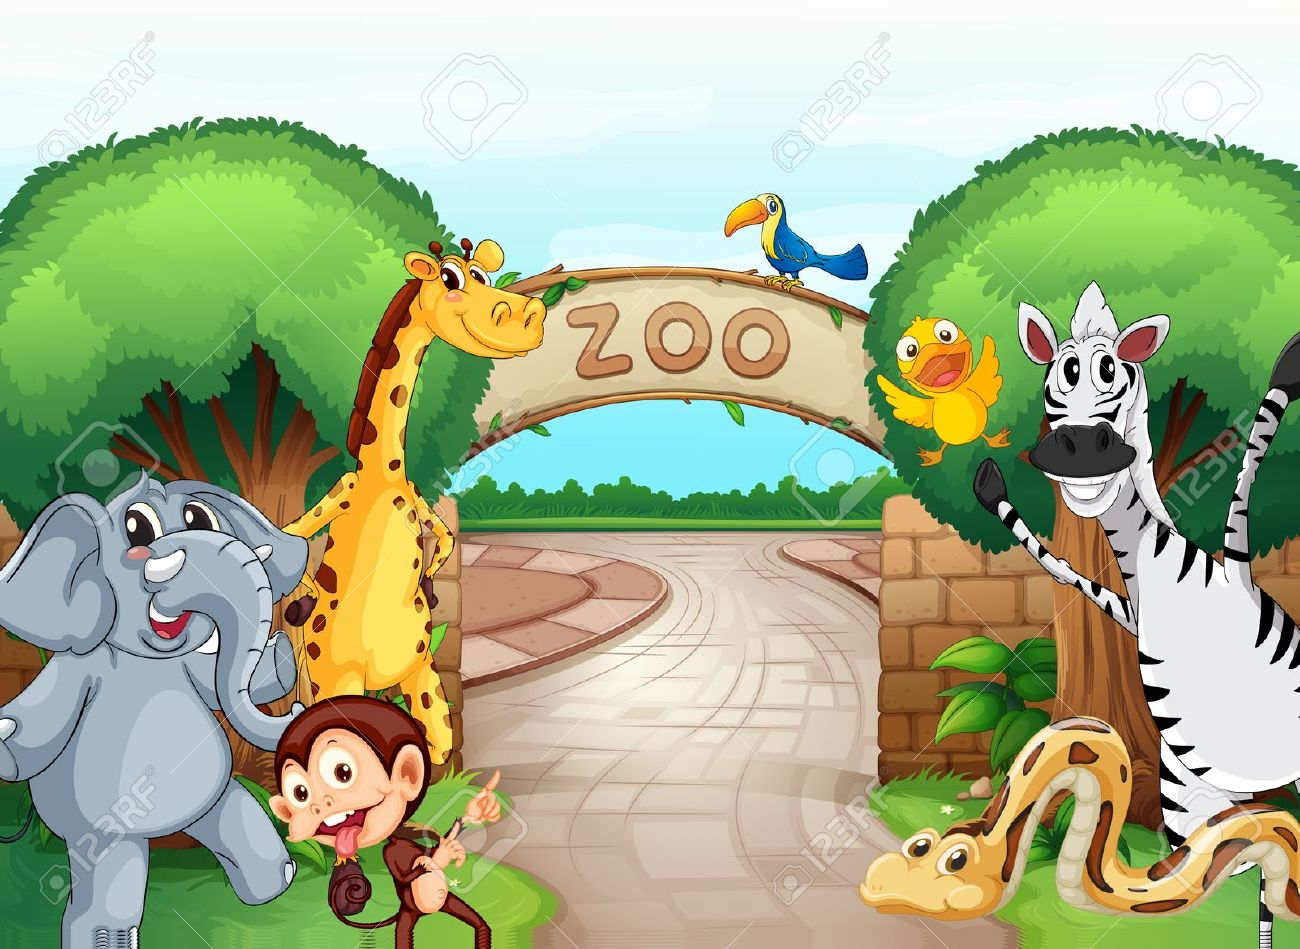 Zoo Gate: Illustration Of A .-zoo gate: illustration of a .-16